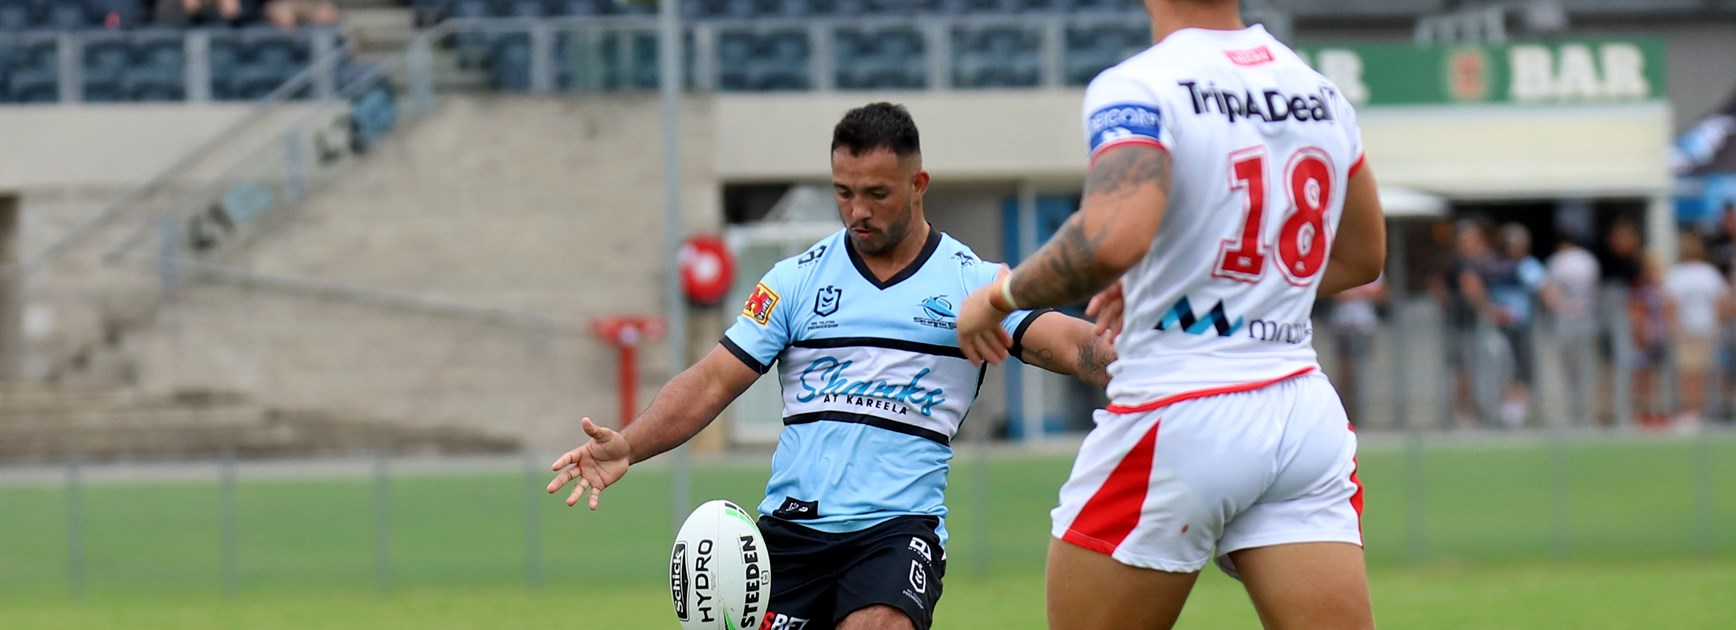 Trindall's tricks spark Sharks but Sullivan loses no admirers